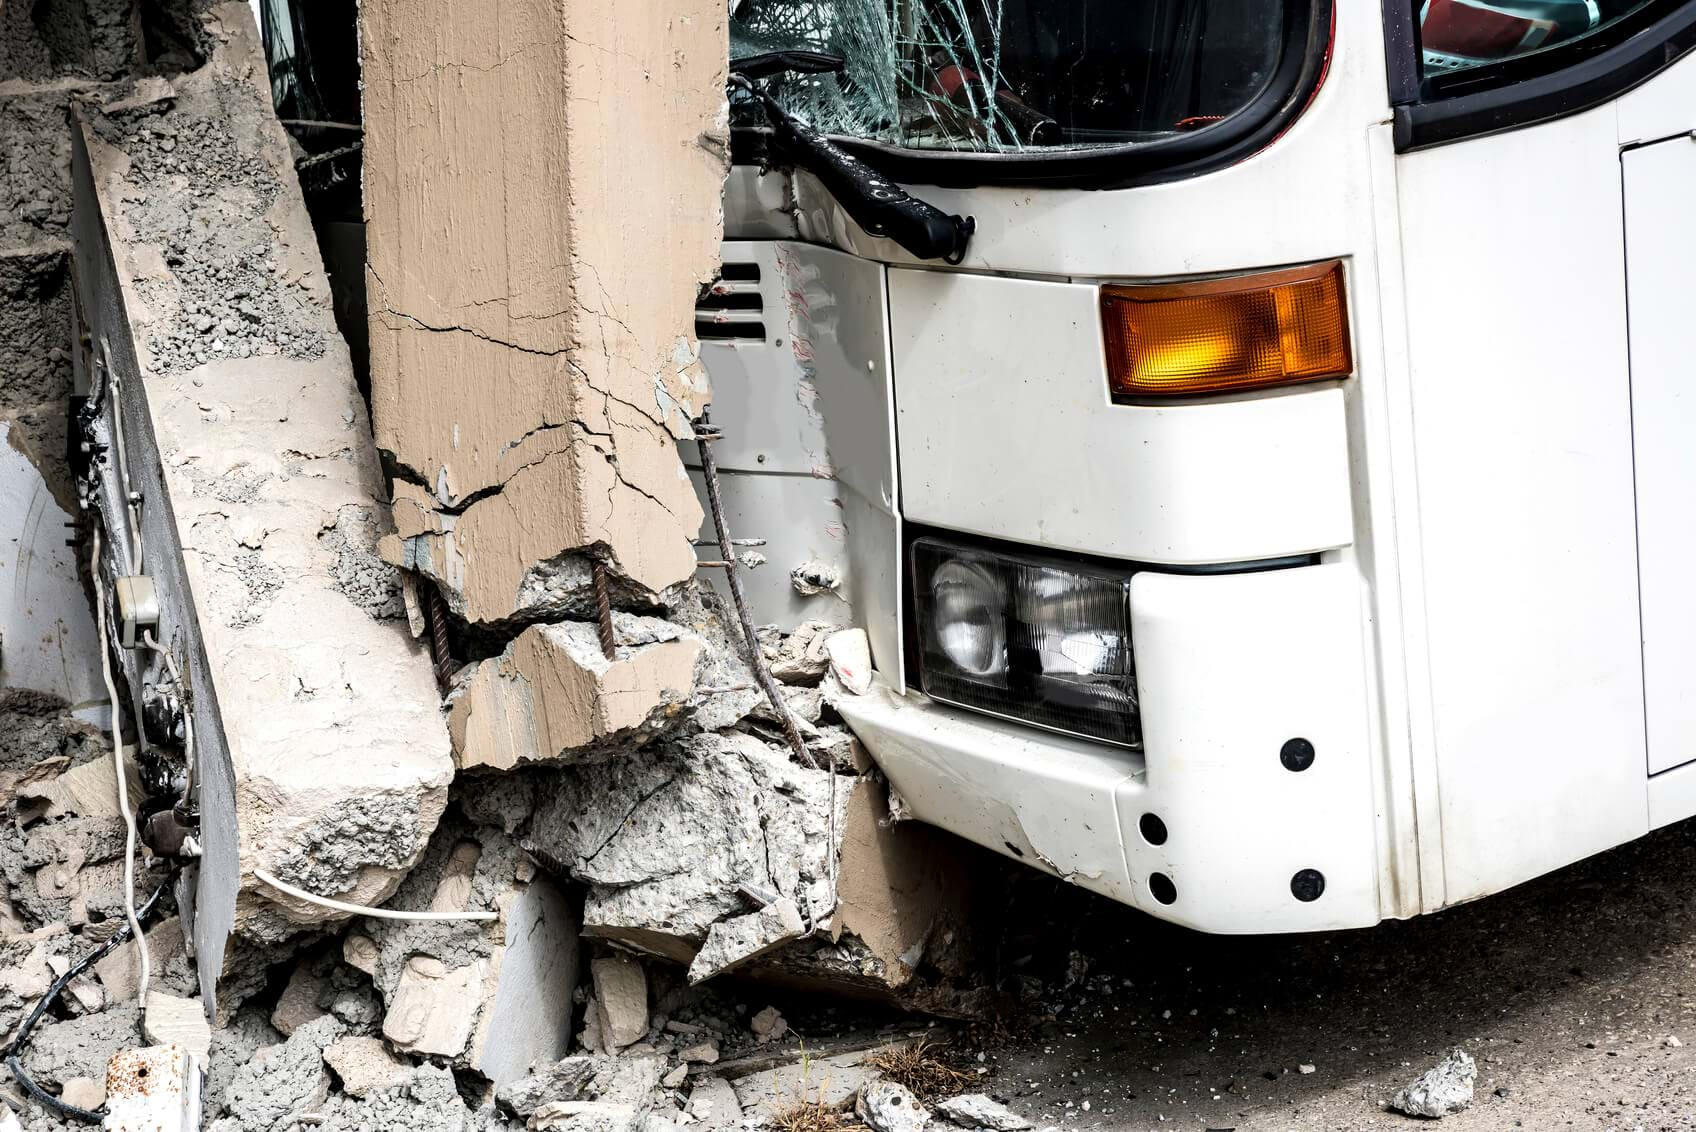 close up of a bus which has crashed into a wall both are damaged severely